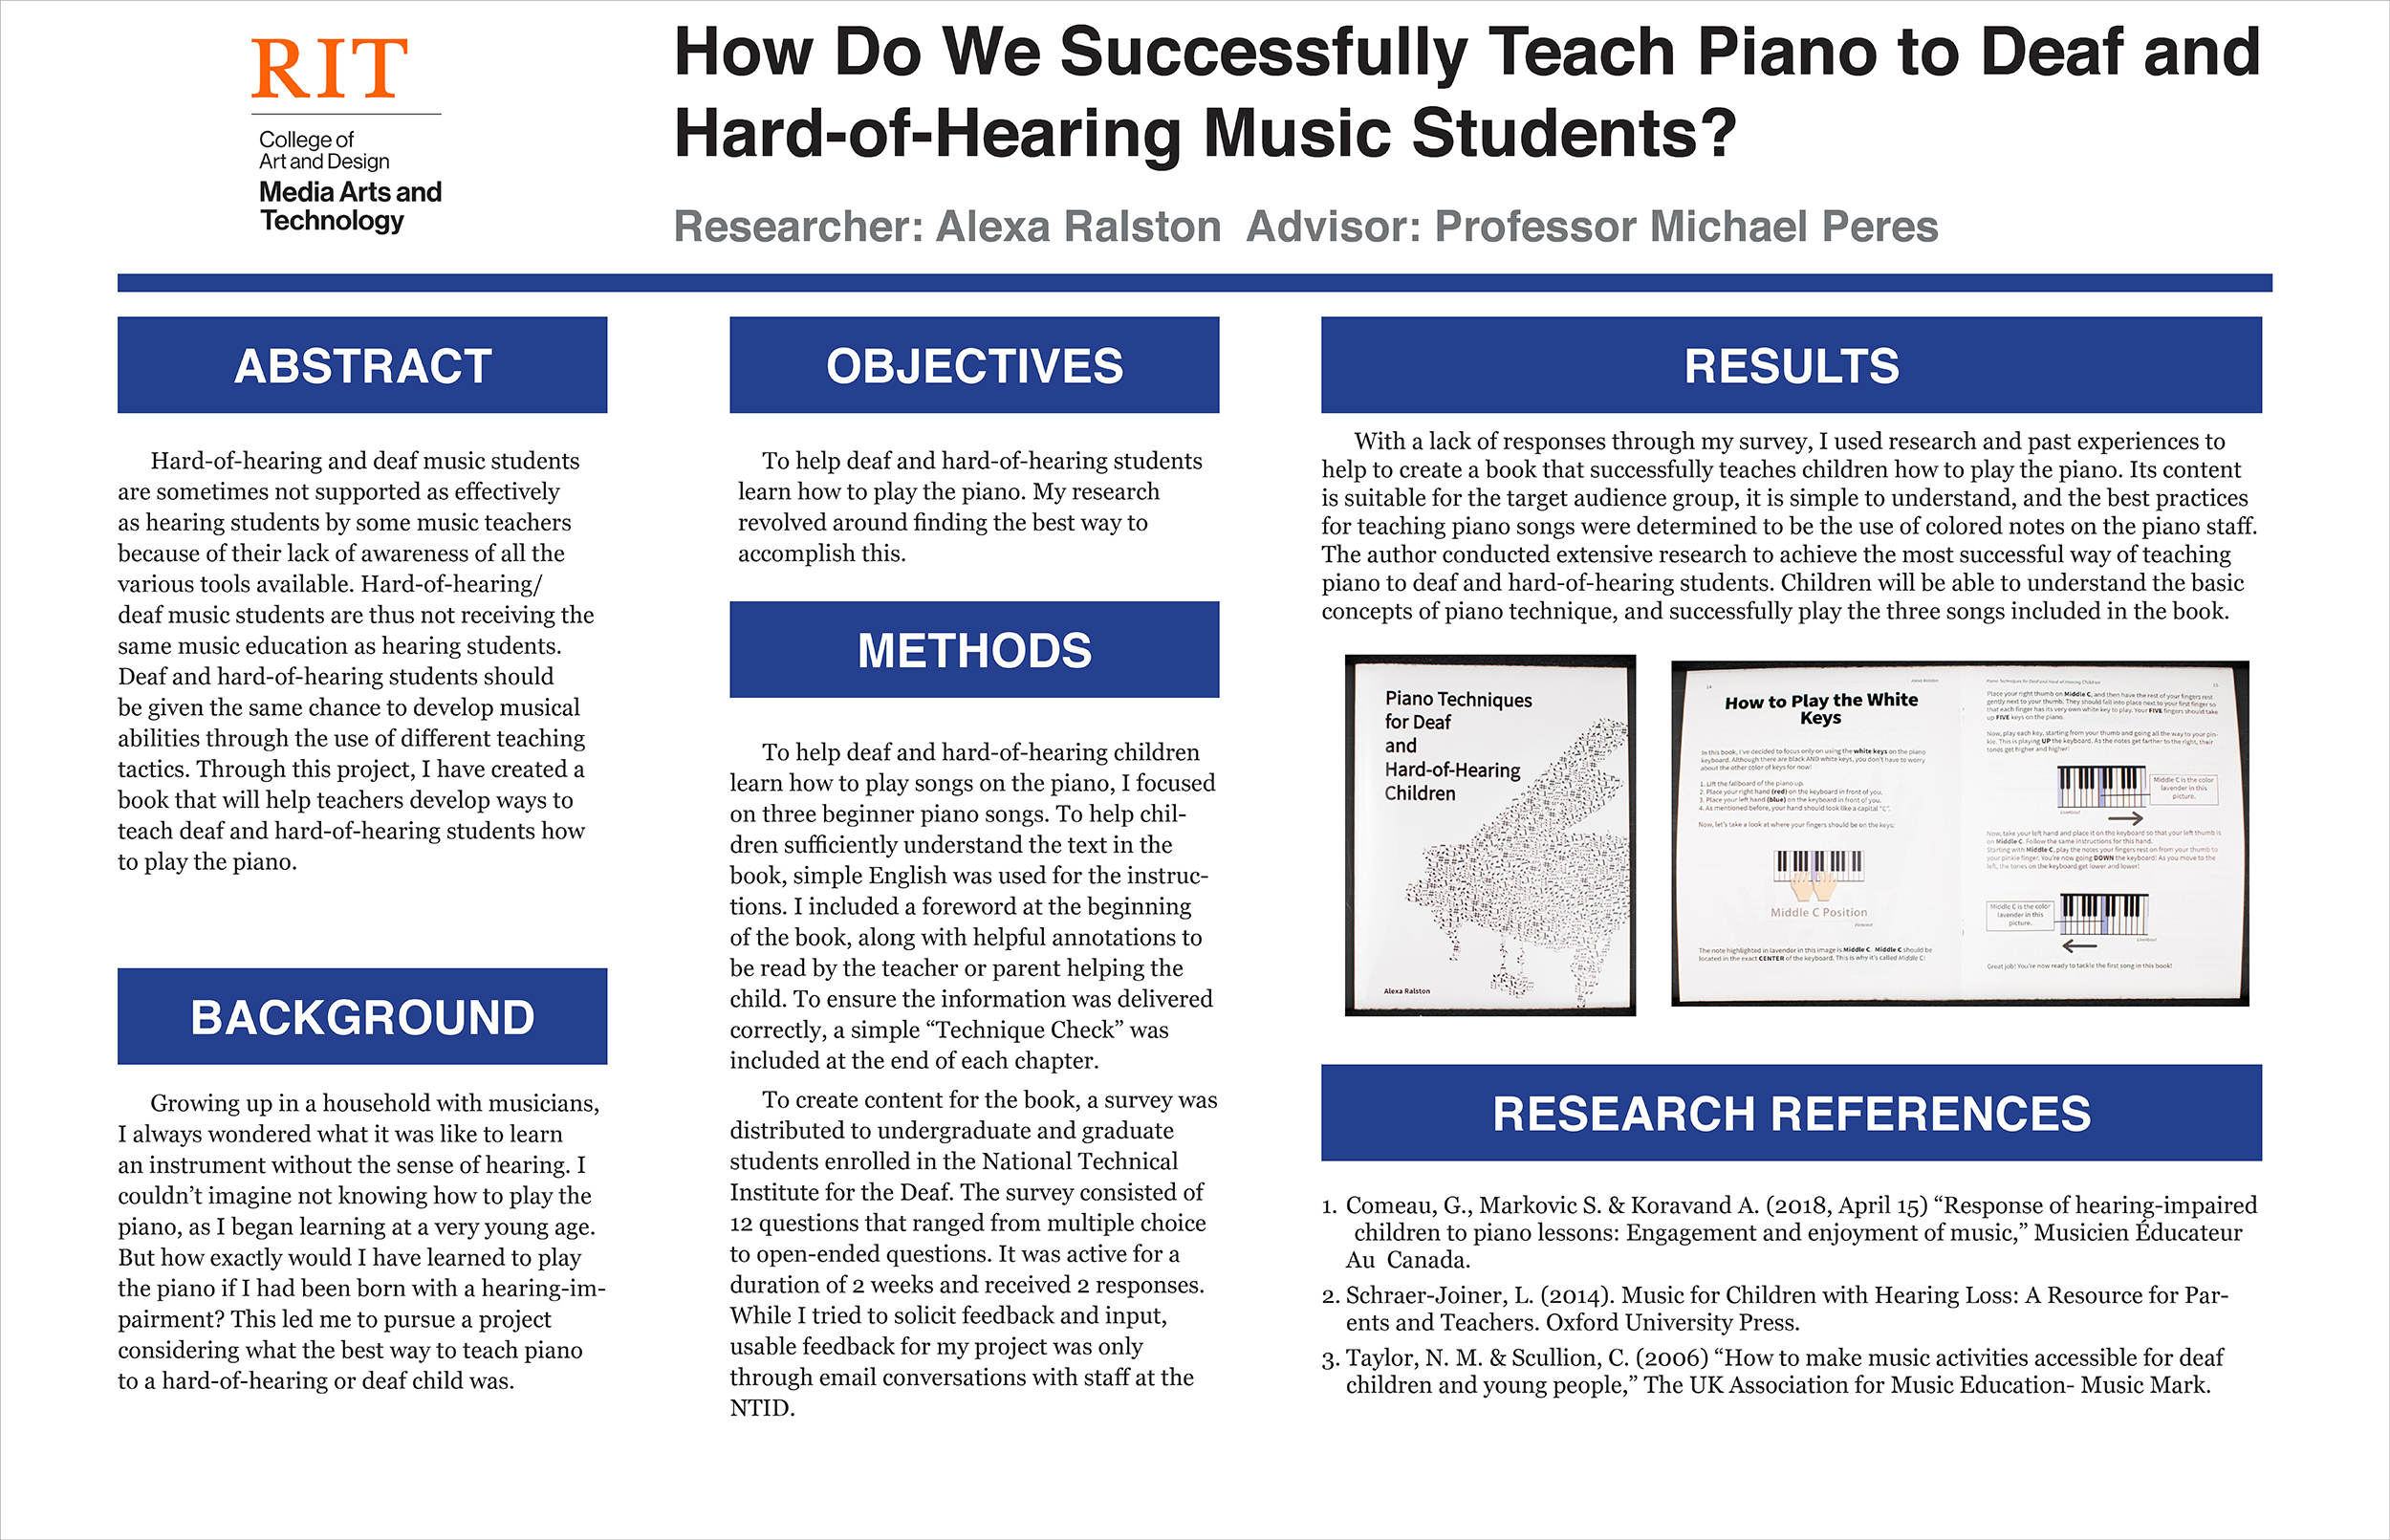 A poster exploring how to successfully teach piano to deaf and hard-of-hearing music students.